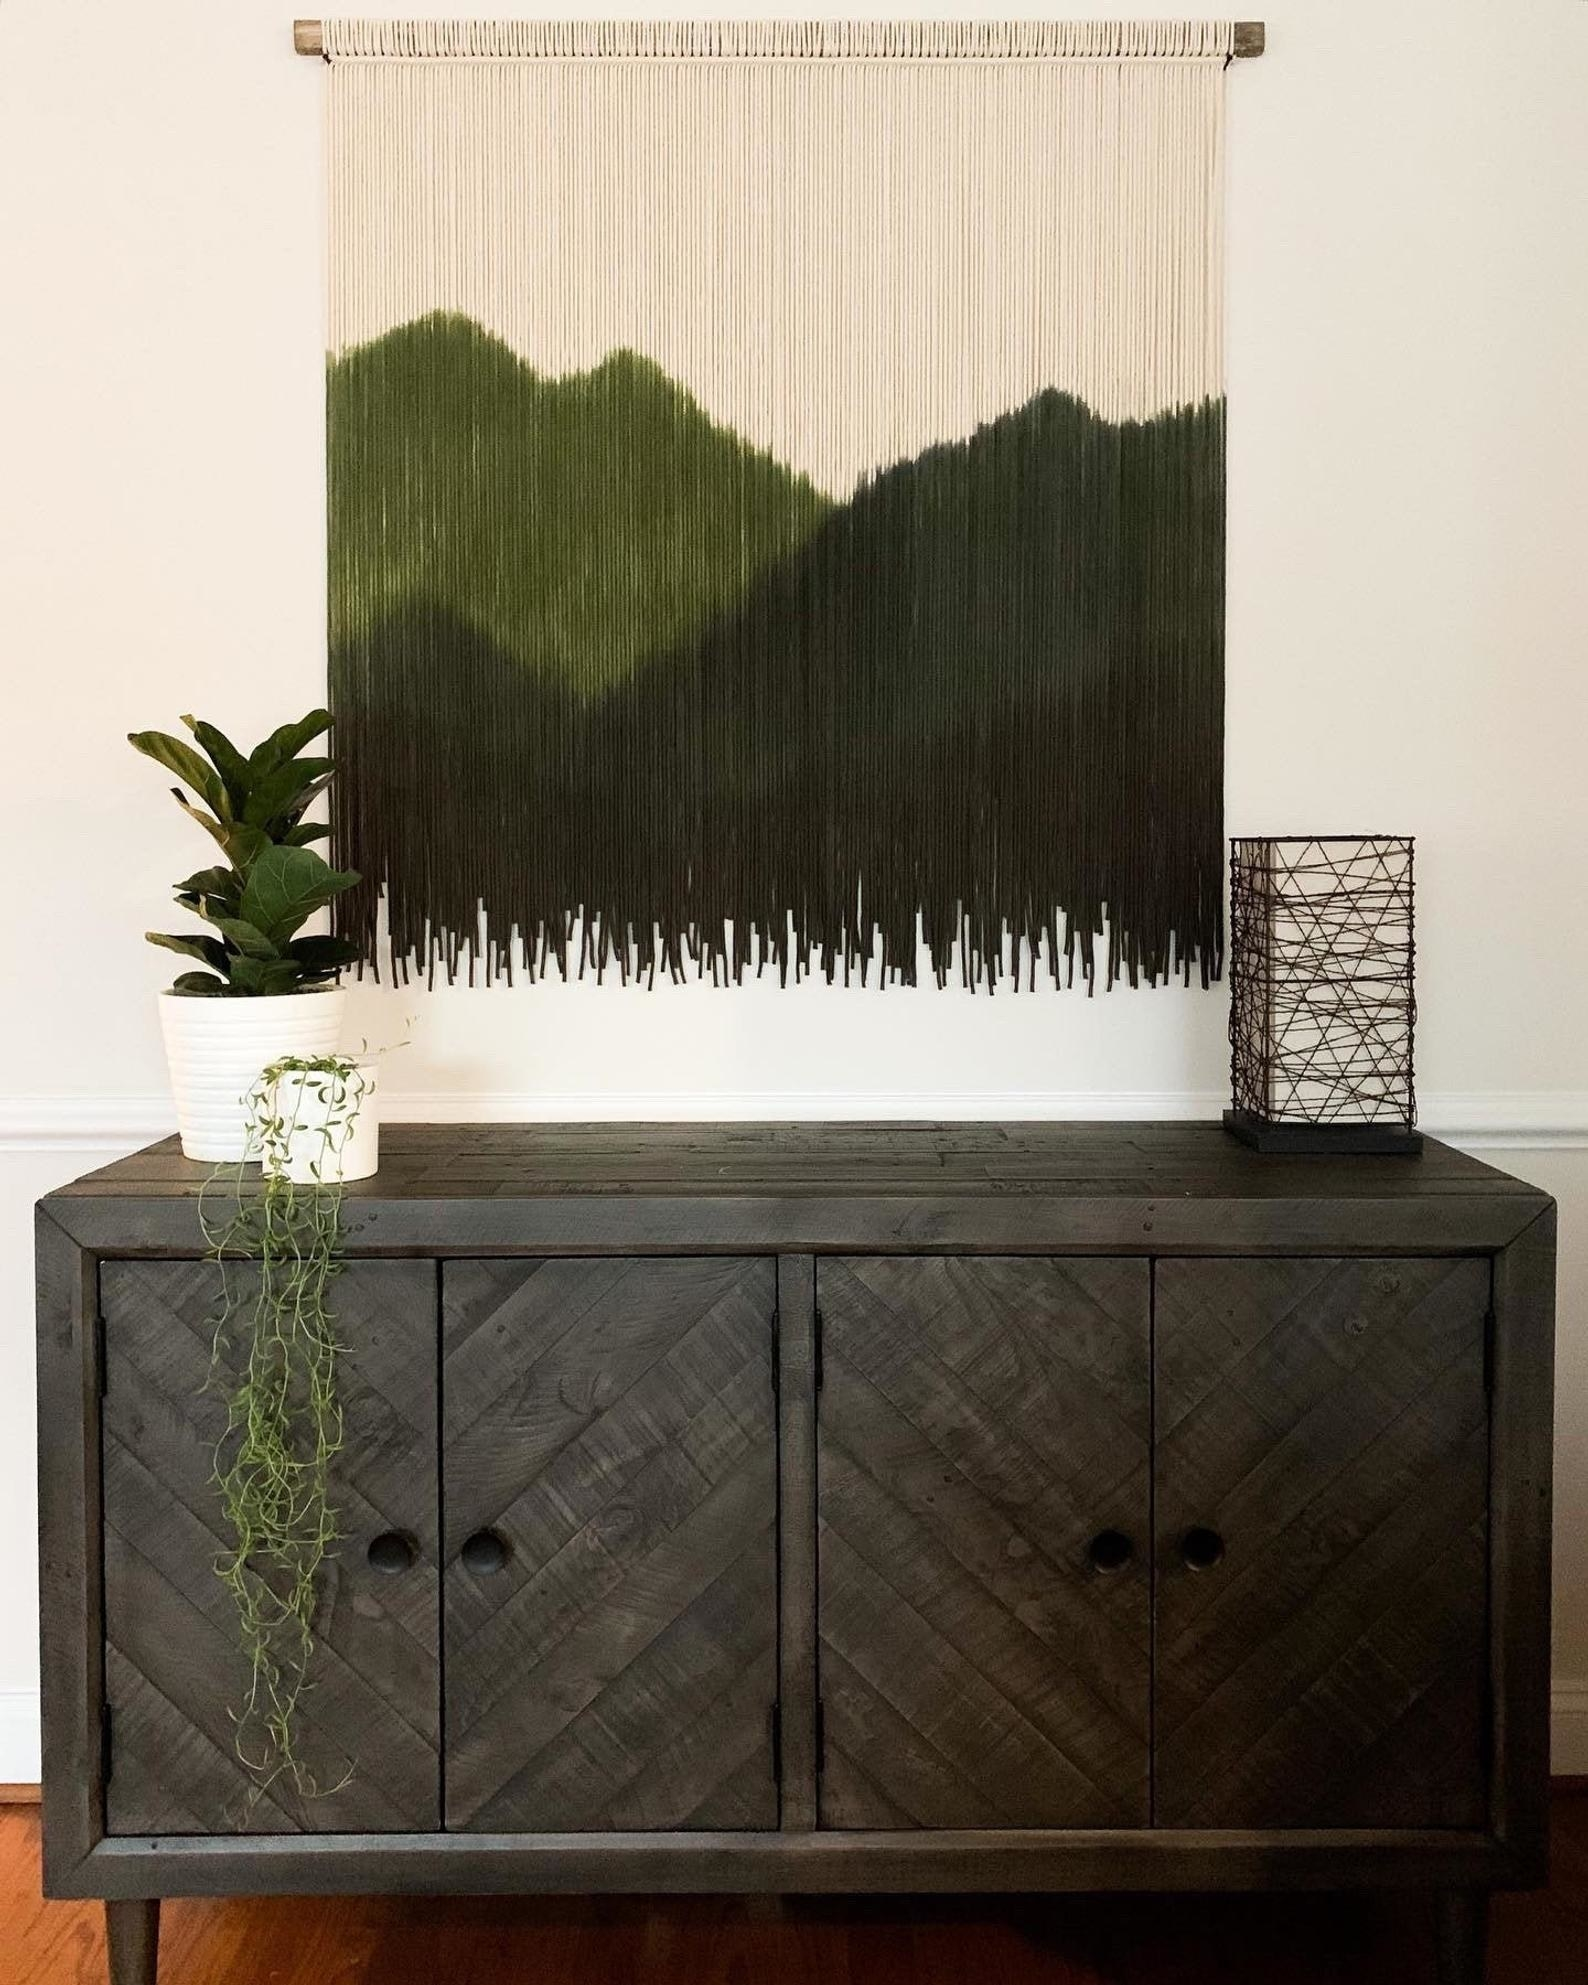 macrame tapestry hanging with different threads of green making up an outline of mountains